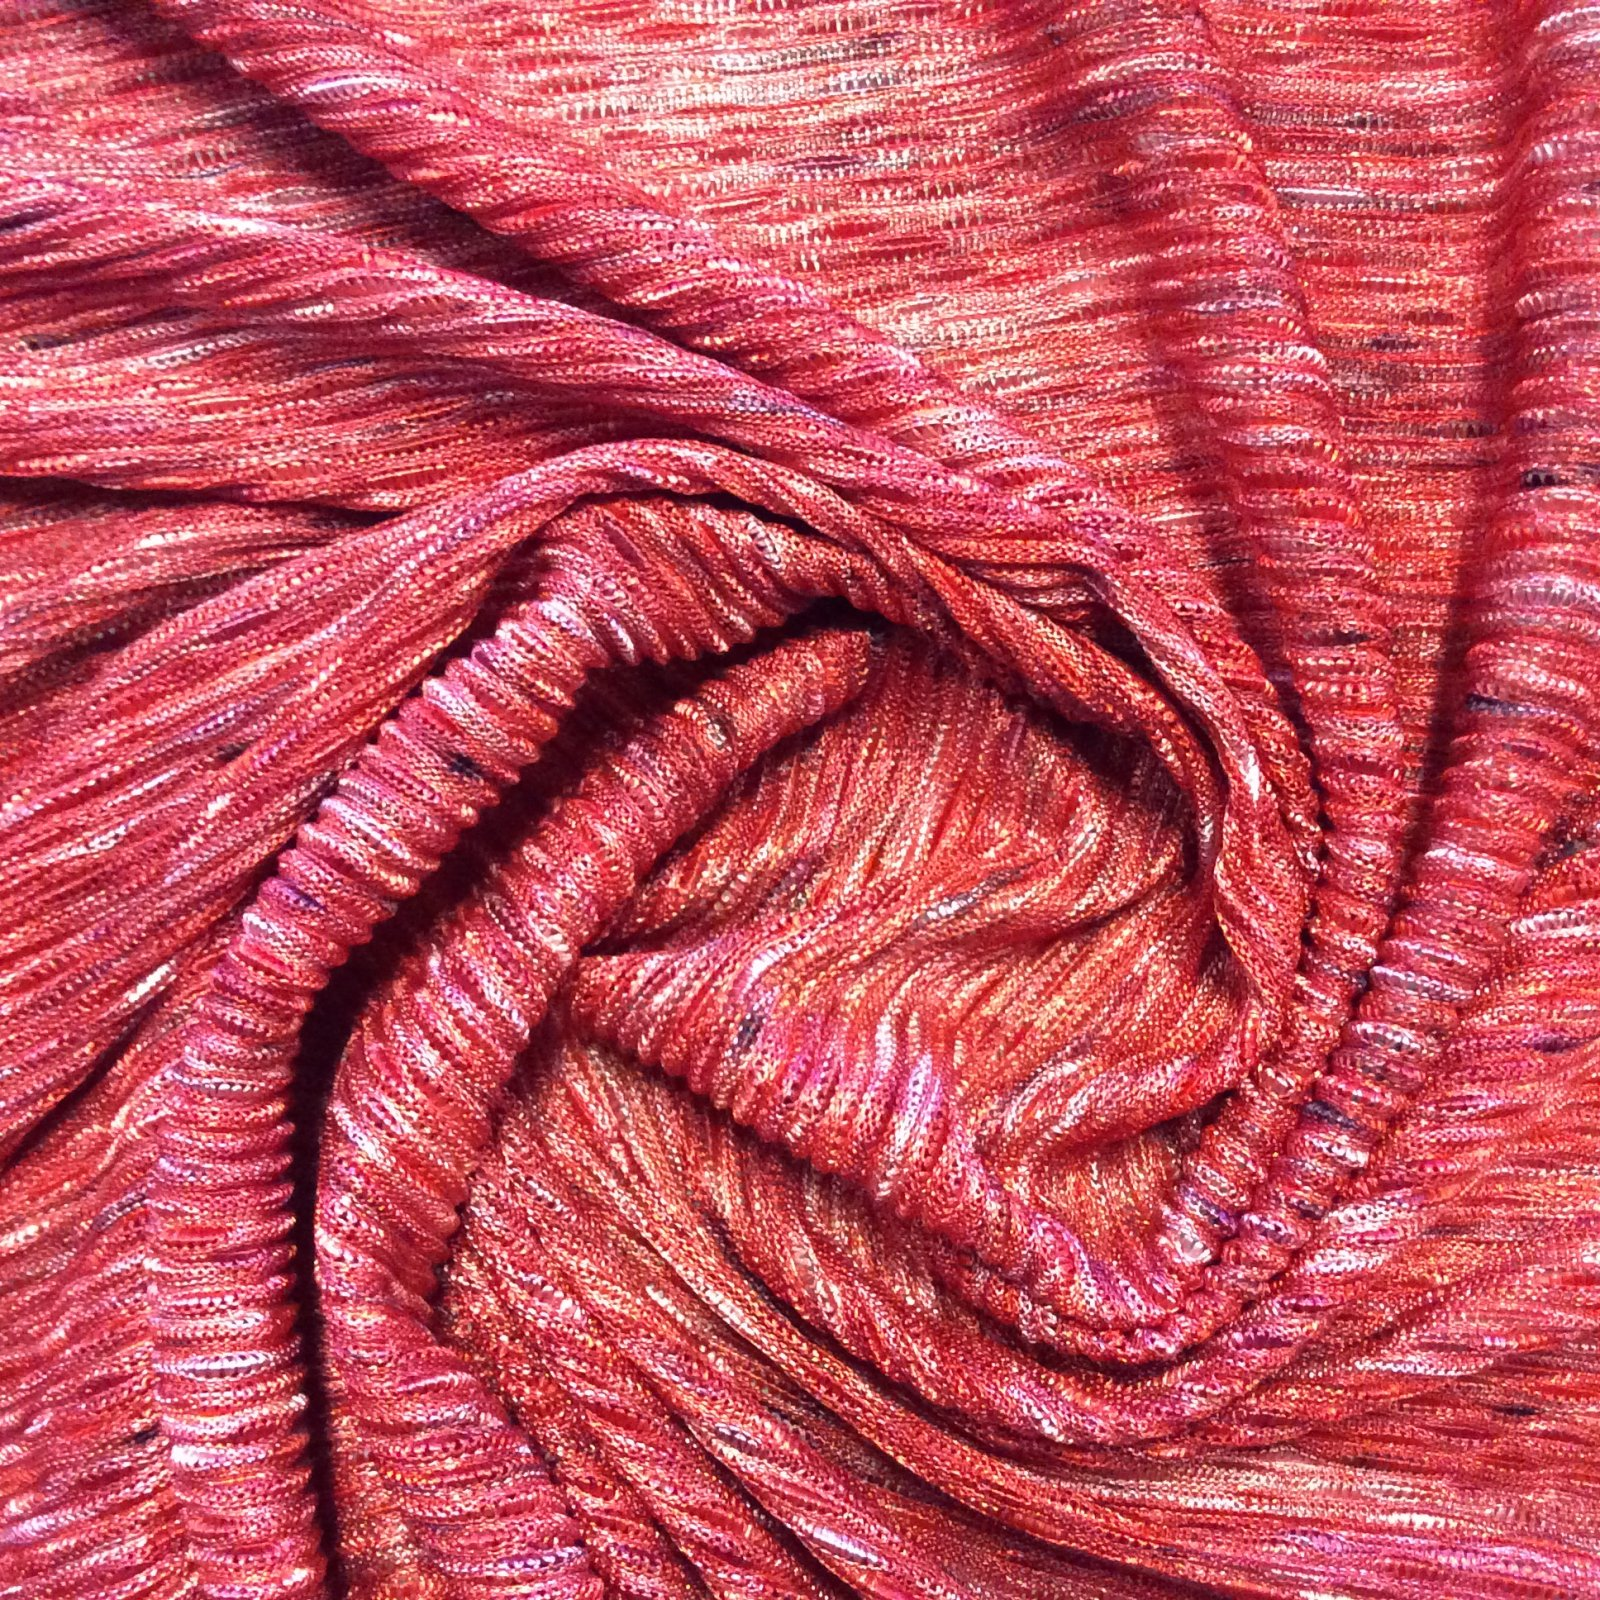 Knit Fabric Fun Missoni Look Made in Italy Red and Pink Wavy  Apparel Sewing Stretch Dressmakers Fabric JK1174